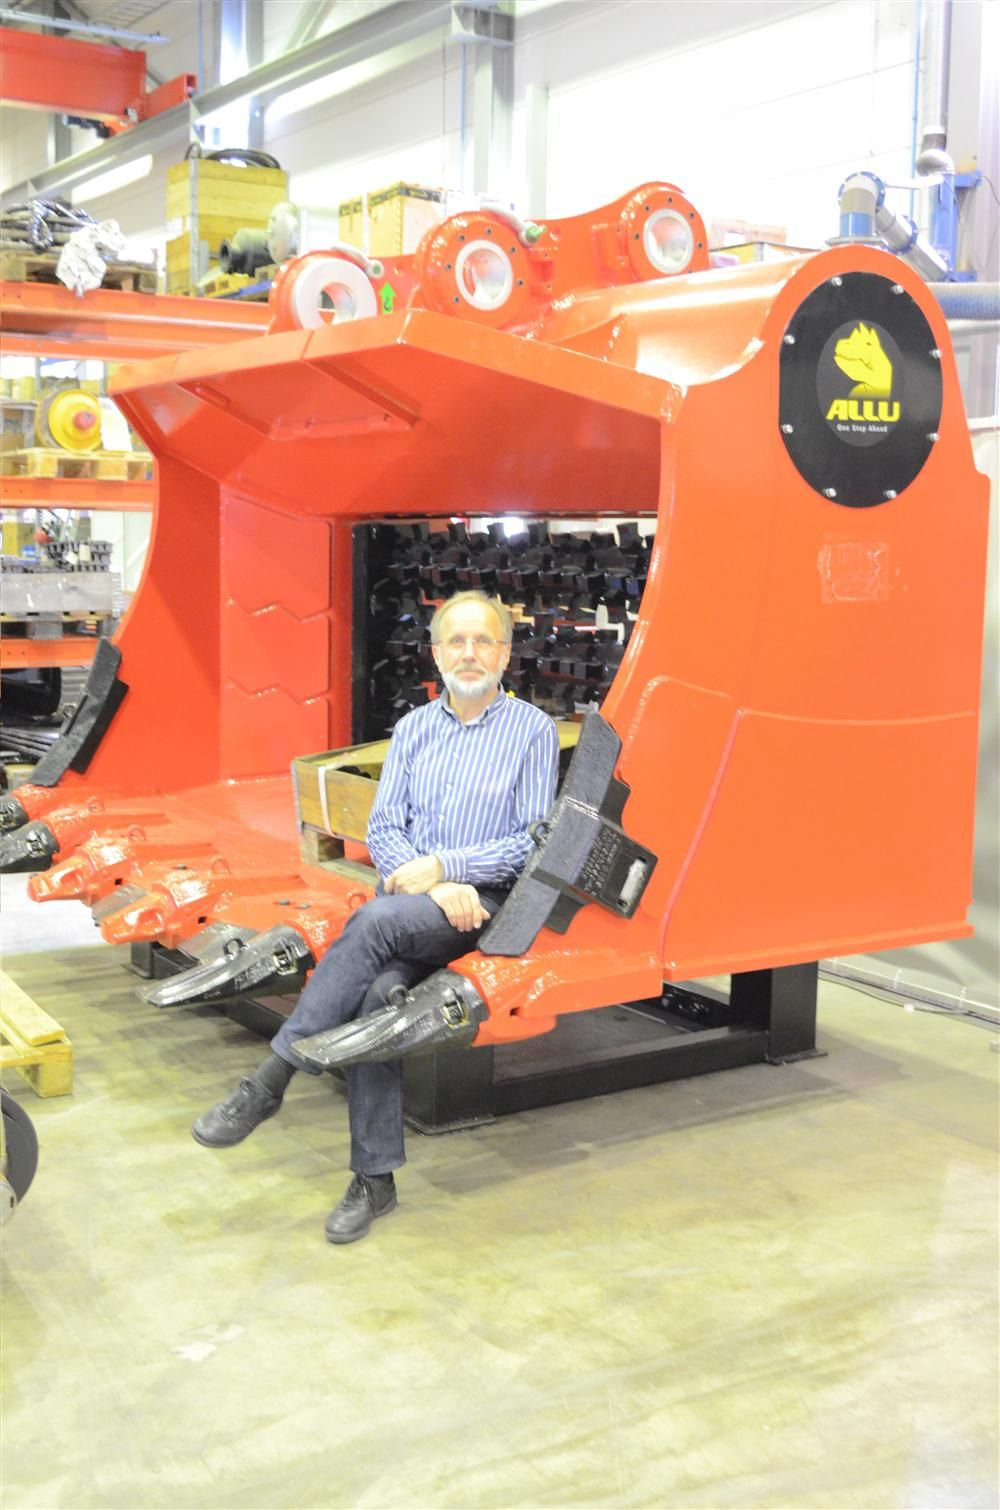 ALLU's Managing Director Kauko Pylvas sits for a photo in the ALLU M series processing bucket.